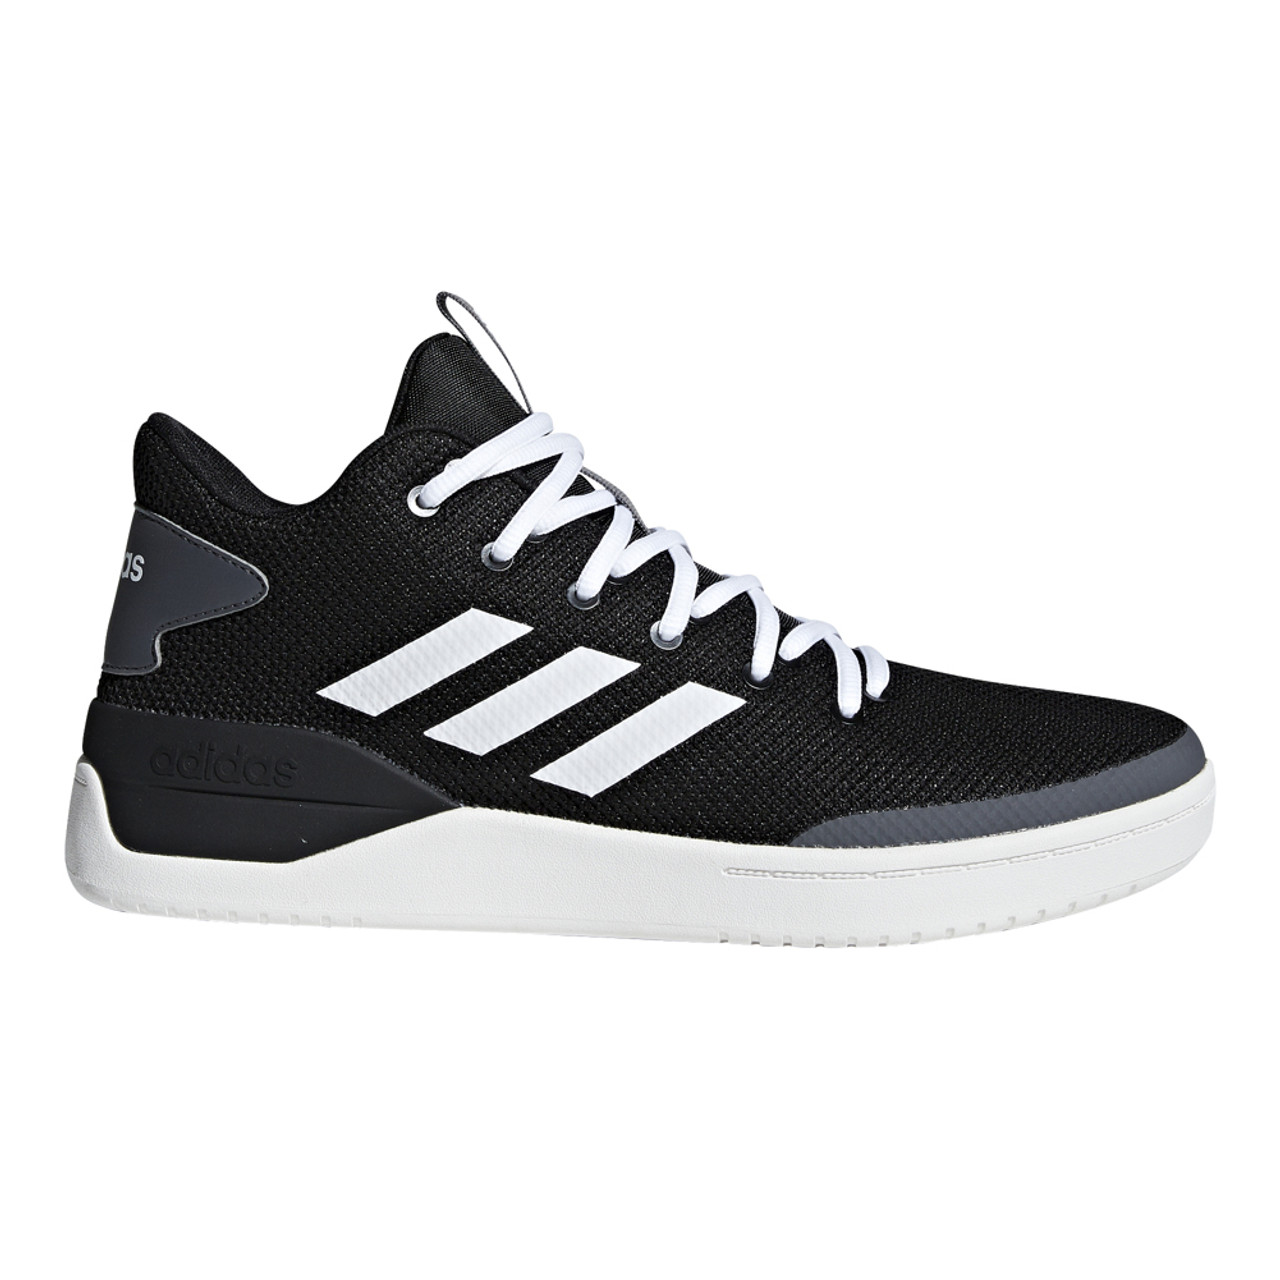 new products 0e193 8821b Adidas Men s Bball80s Basketball Shoe Black White - Shop now   Shoolu.com